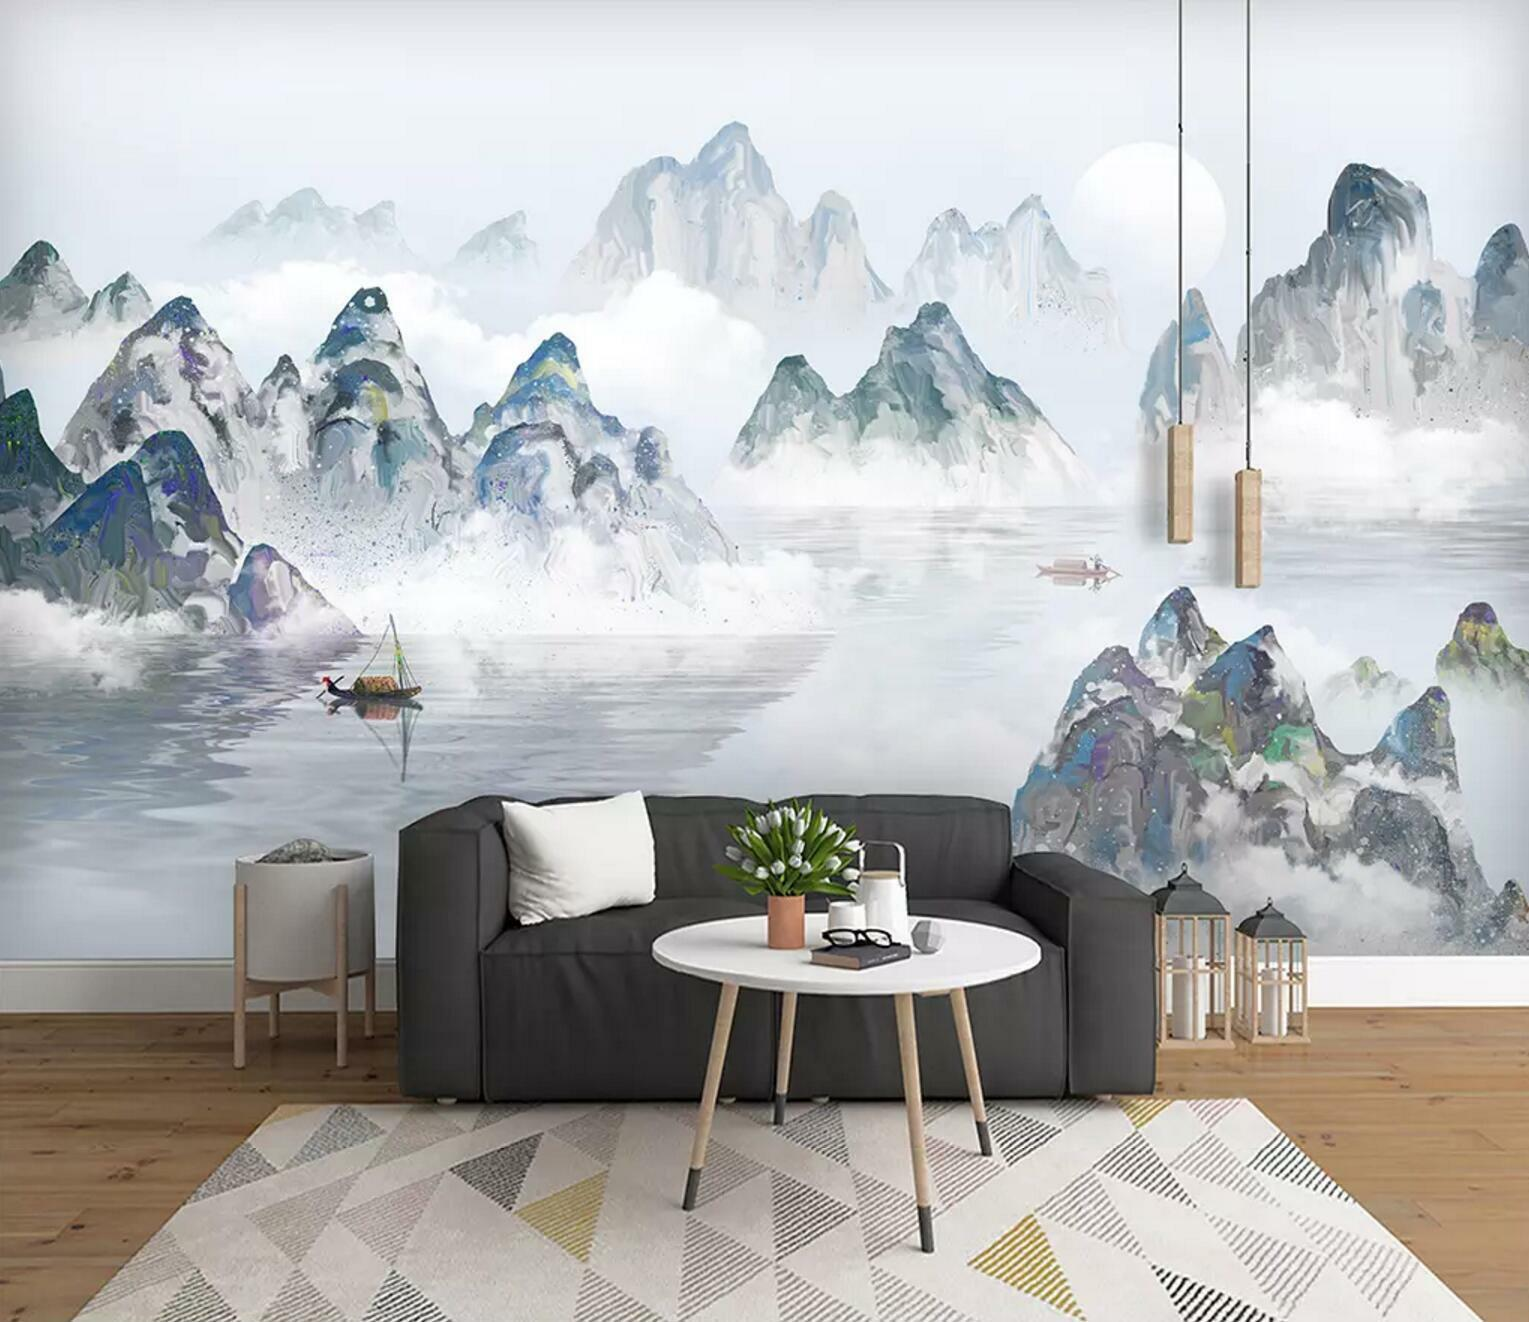 3D Mountain River 31 Wall Paper Exclusive MXY Wallpaper Mural Decal Indoor wall